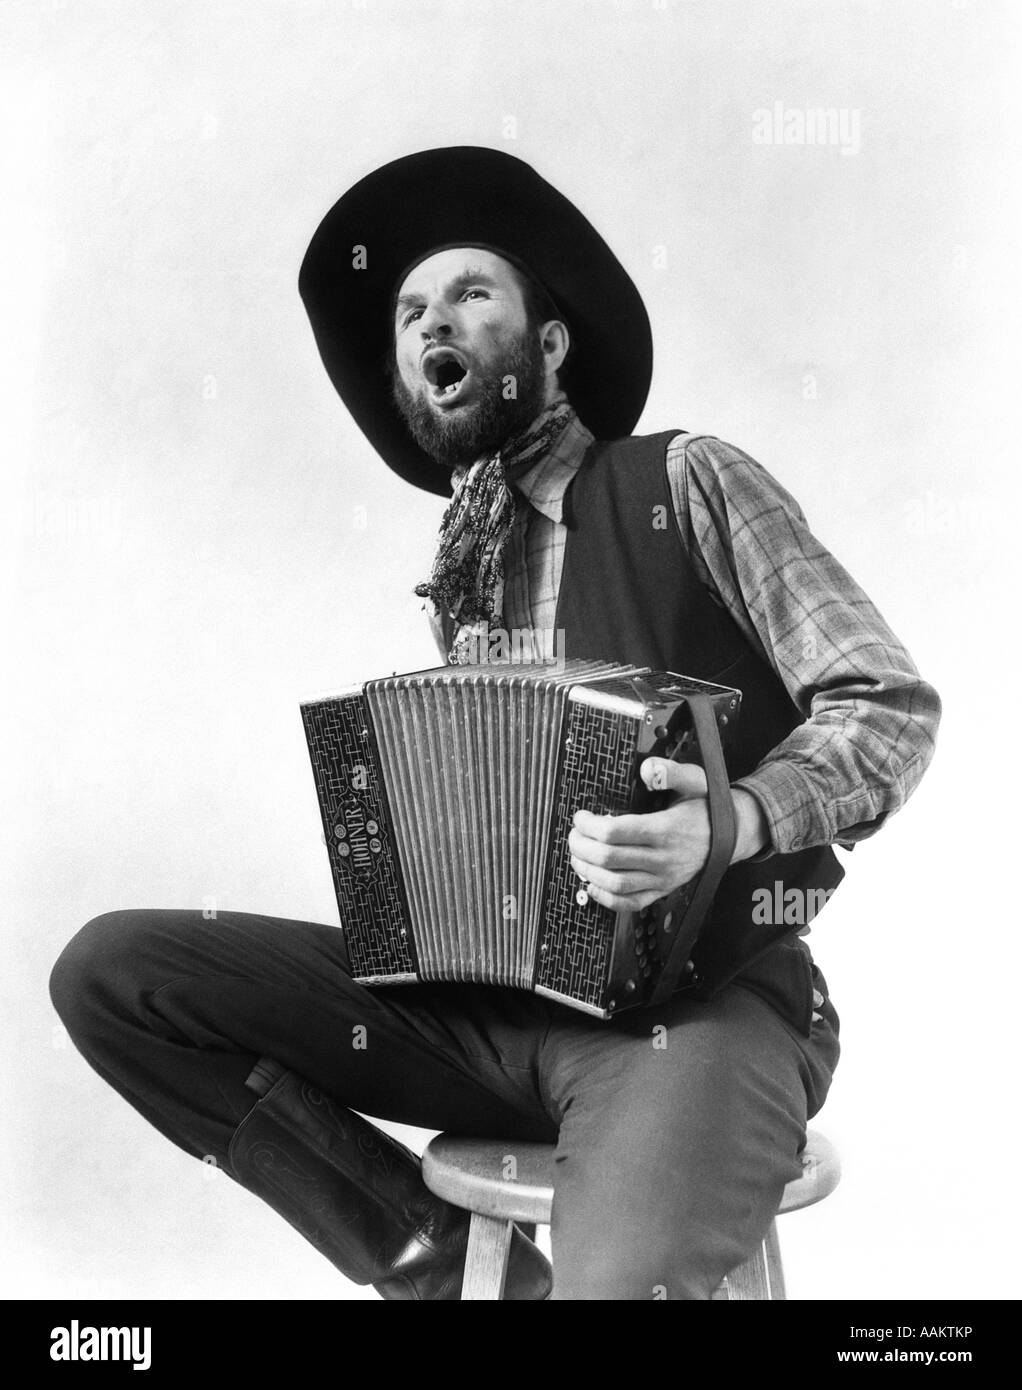 1930s COWBOY PLAYING ACCORDION & SINGING - Stock Image